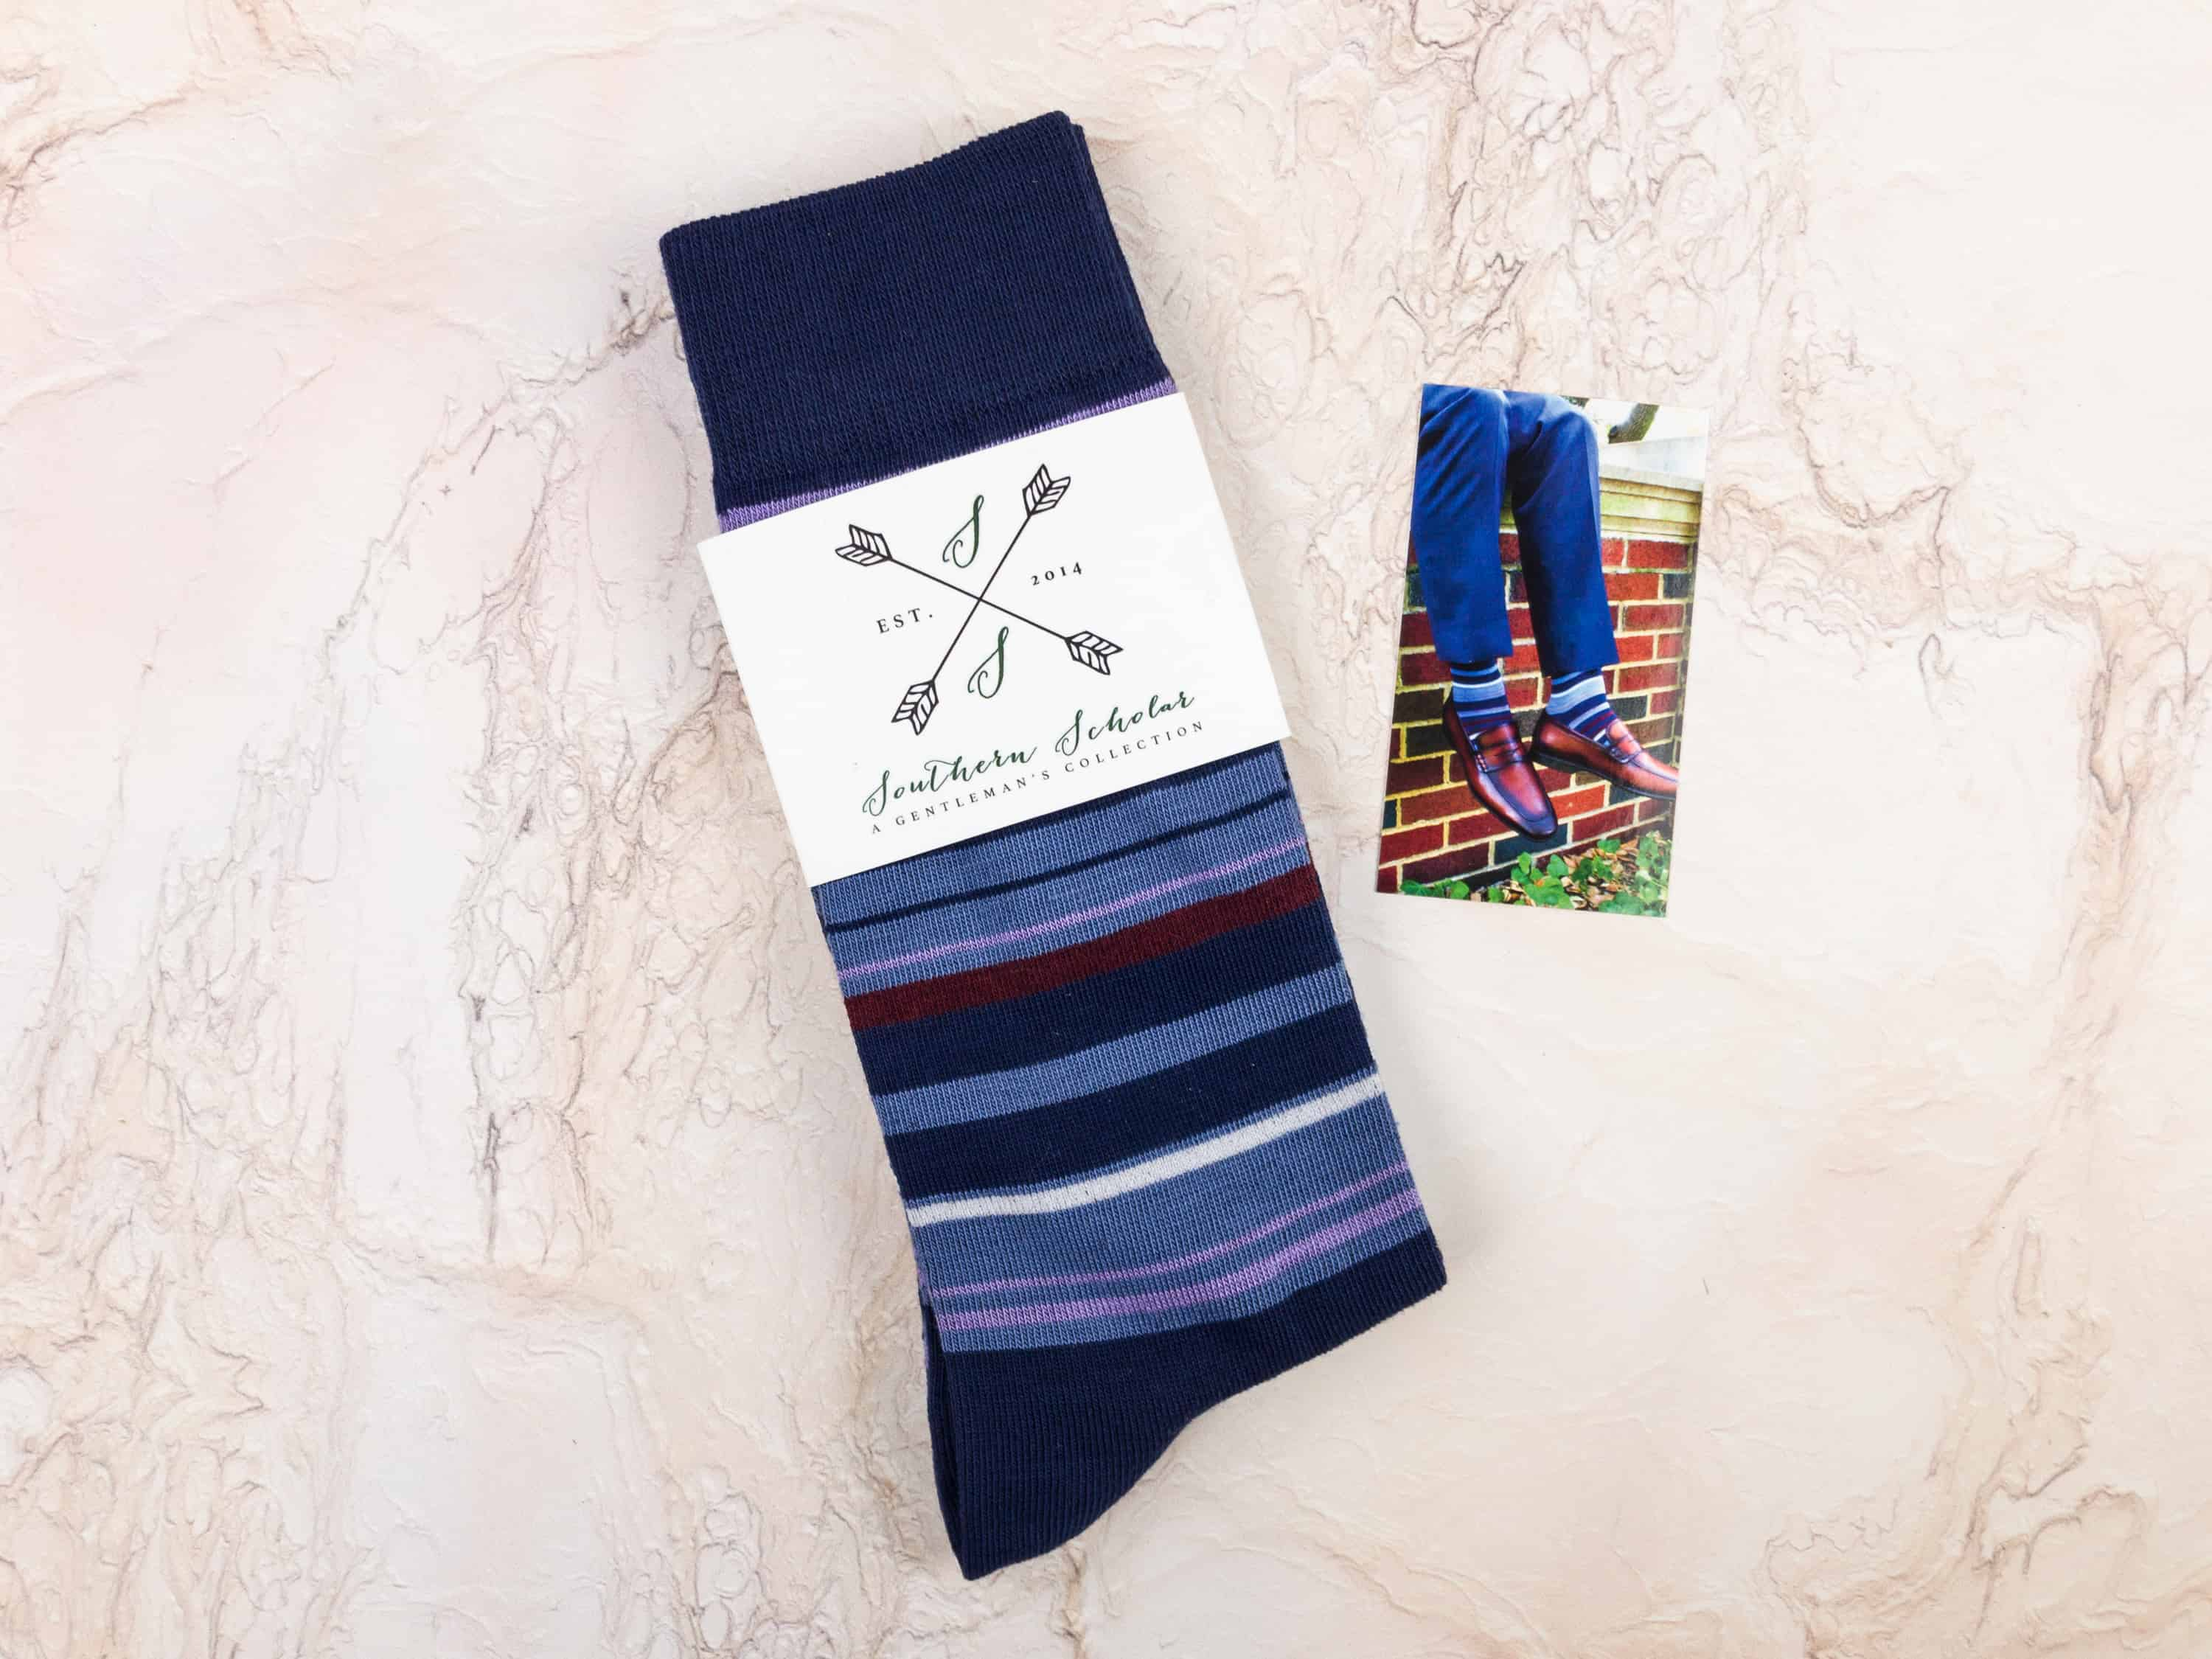 Southern Scholar Men's Sock Subscription Box Review & Coupon – January 2018